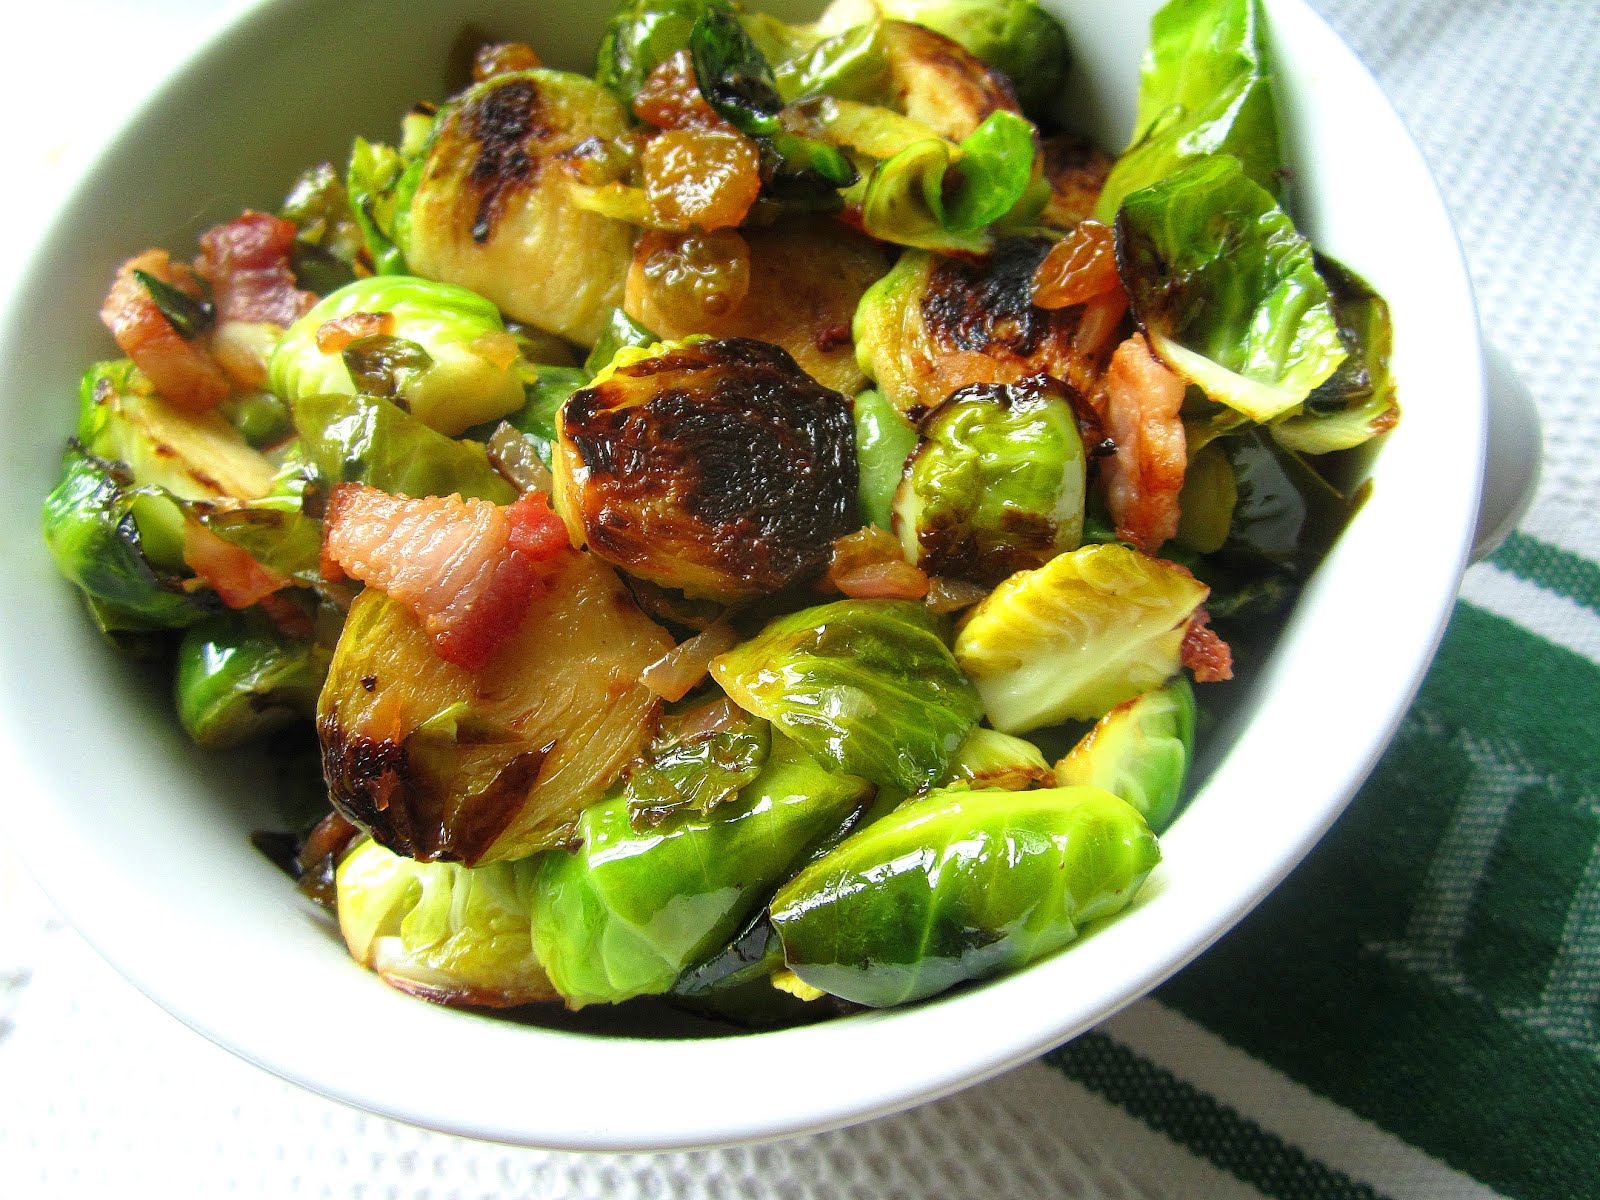 ... Snacks: Turkey Sides: Pan Fried Brussels Sprouts w/ Bacon & Raisins